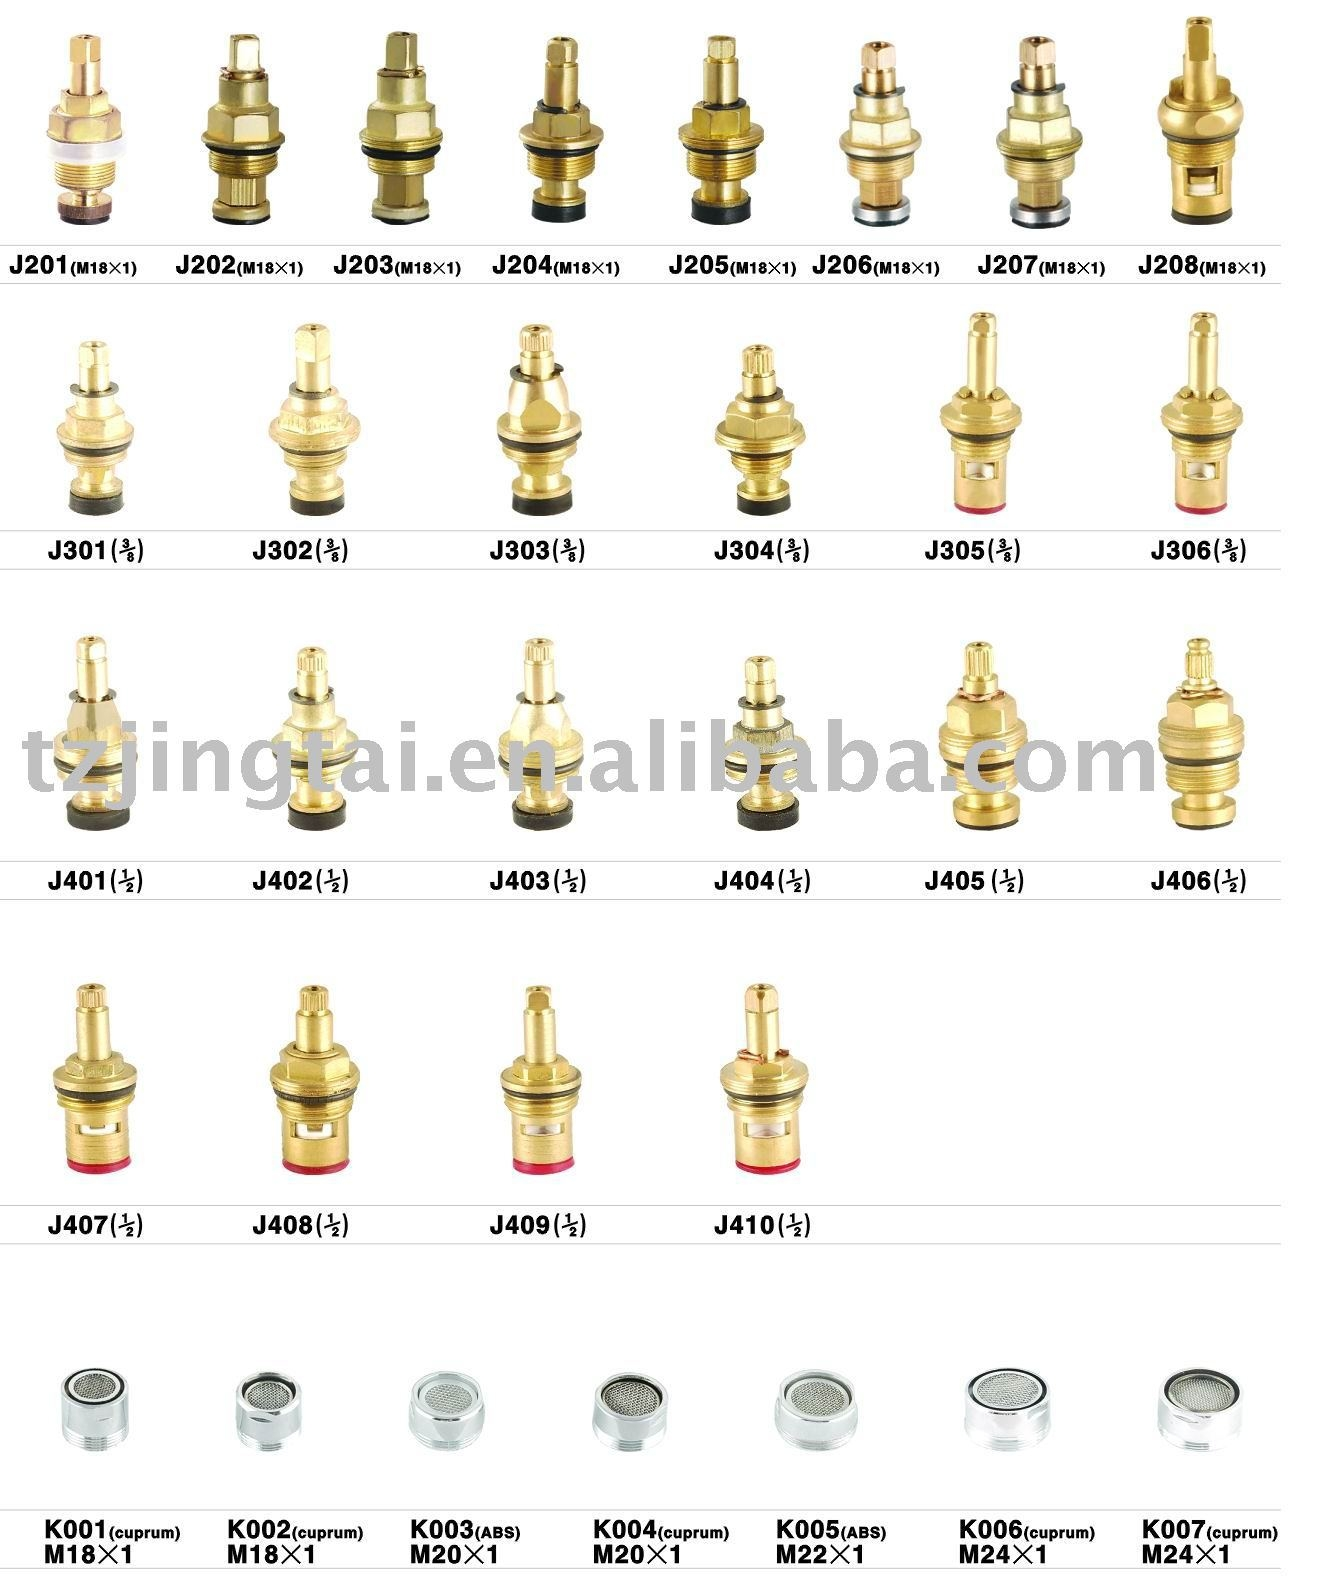 Ideas, types of shower faucet stems types of shower faucet stems types of moen shower valves ideasidea 1332 x 1582  .